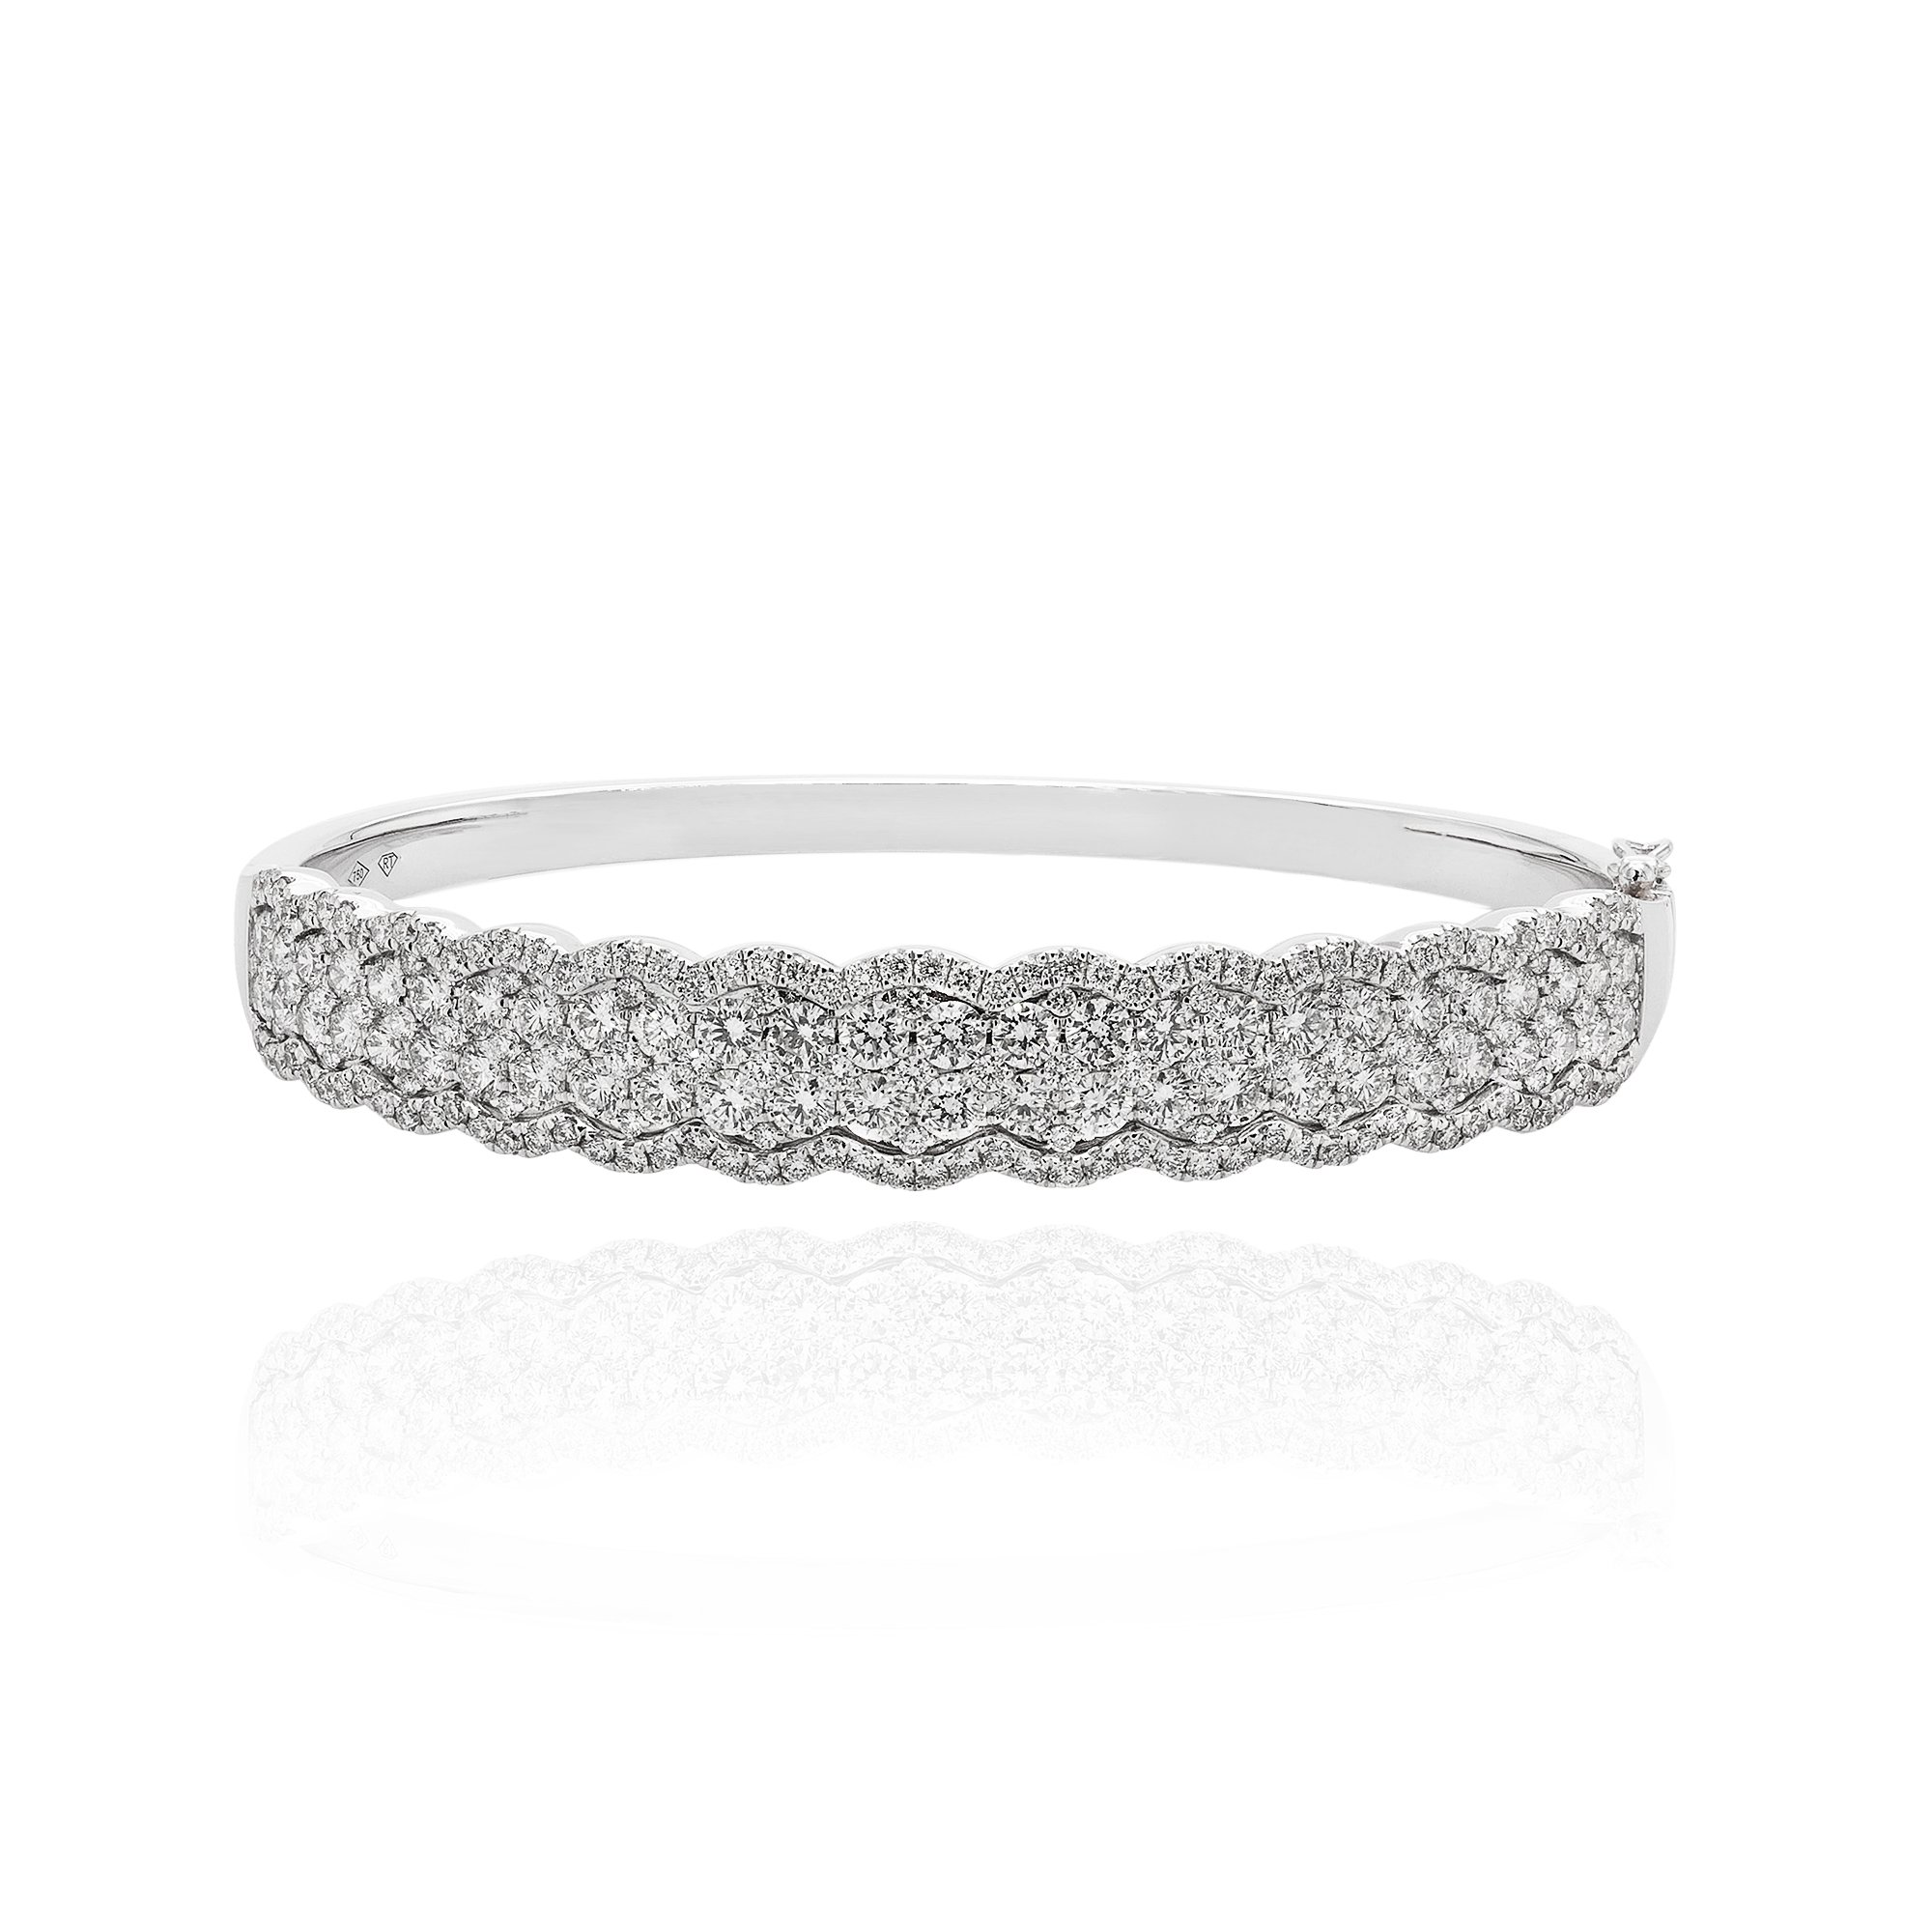 silver street graduated ss bangles sloane sdcb s sterling bangle bracelet product diamond pave white